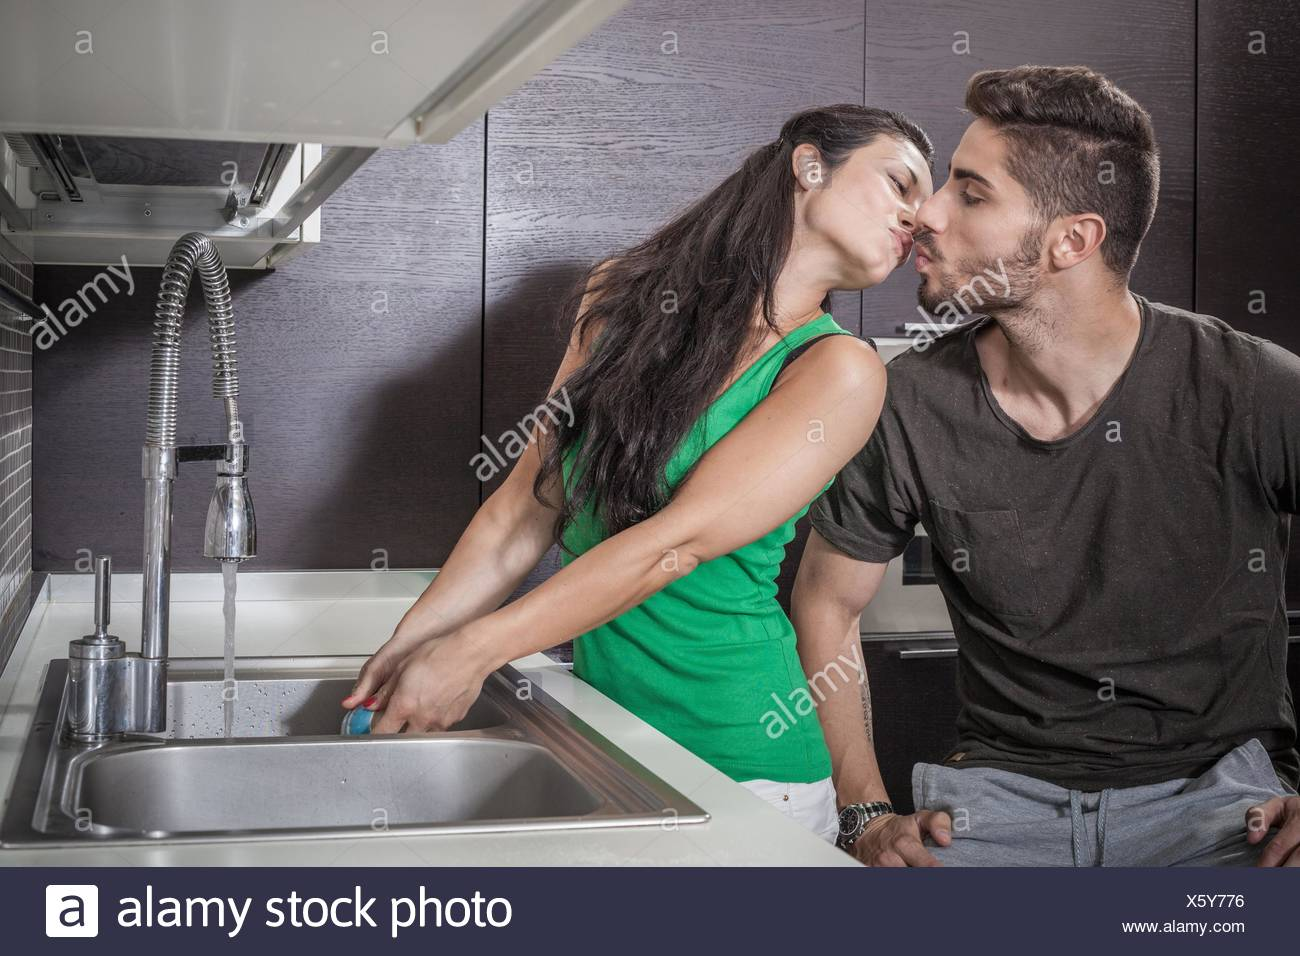 Young woman washing up alors que les baisers petit ami Photo Stock